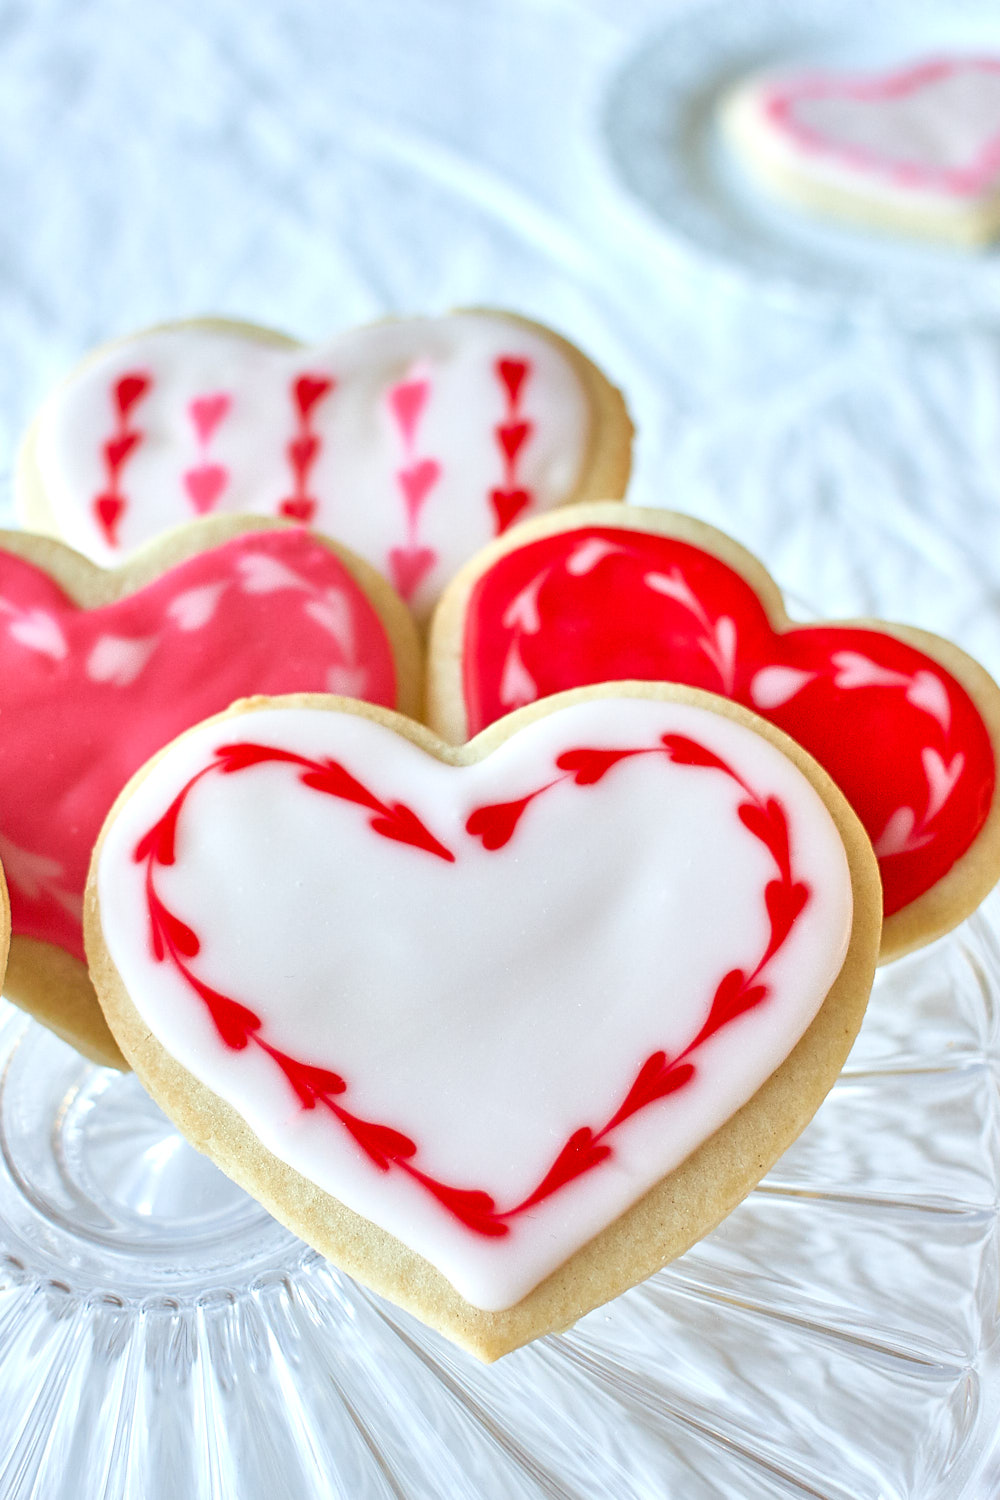 Red and white heart shaped sugar cookies on a plate